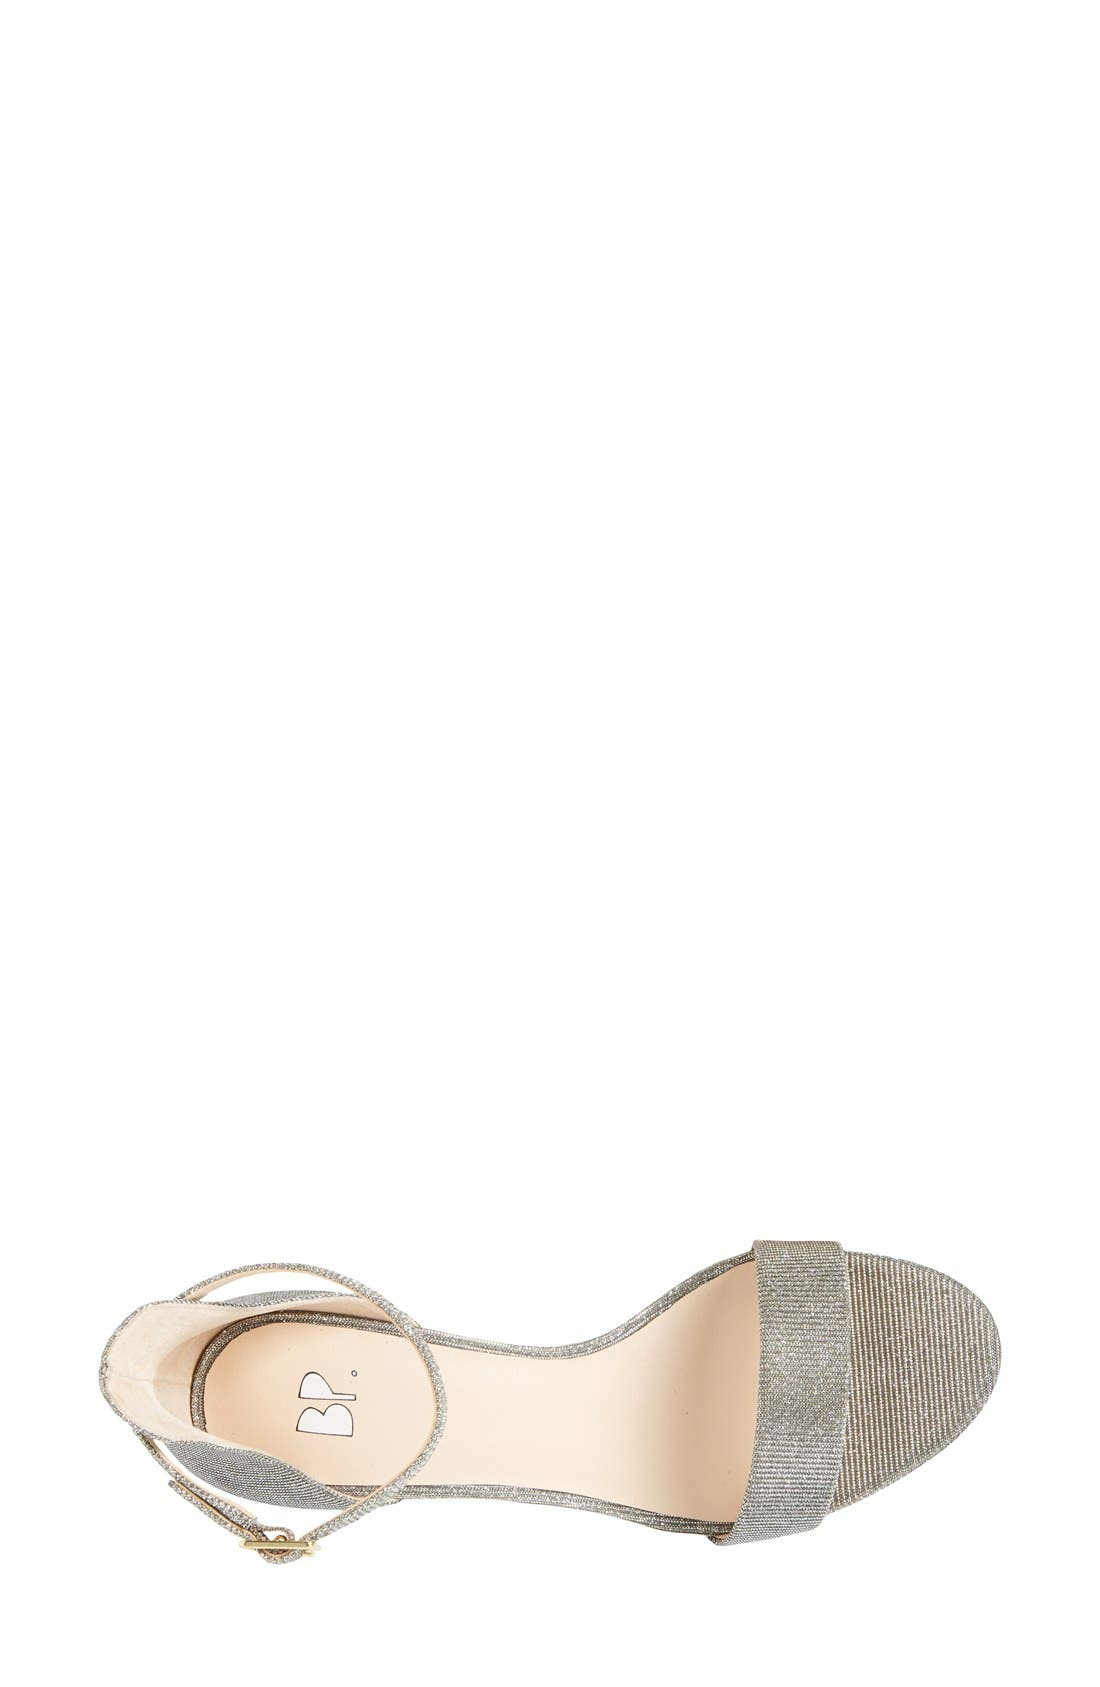 'Luminate' Open Toe Dress Sandal,                             Alternate thumbnail 118, color,